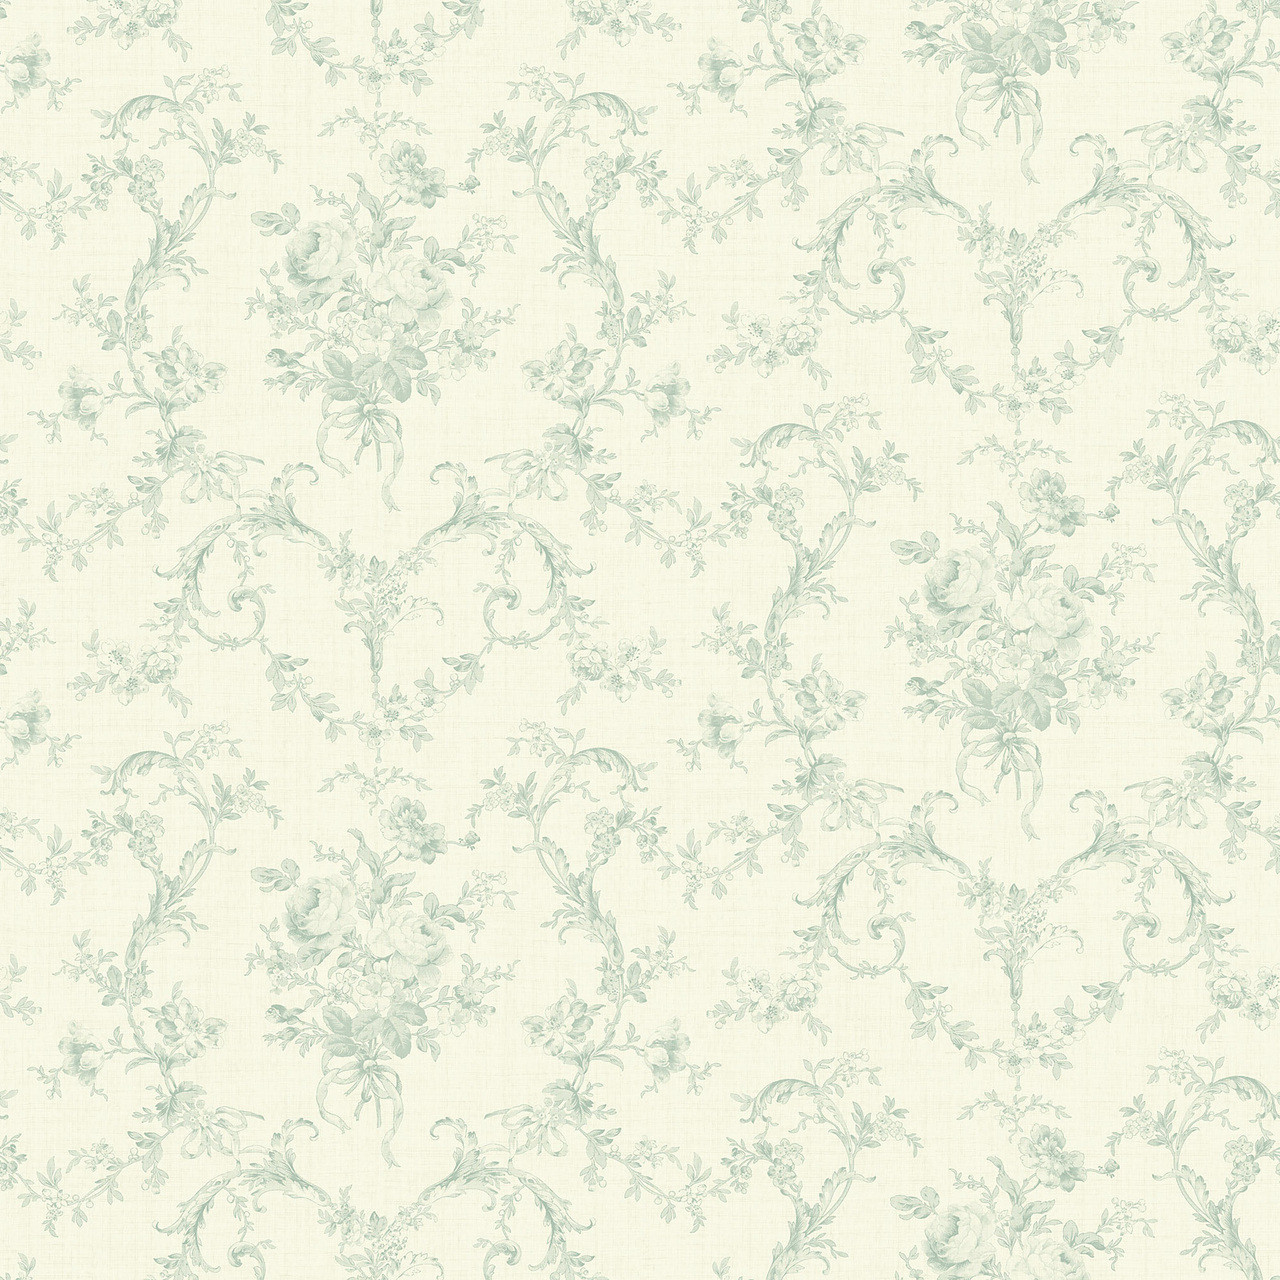 291 71004 Green Mini Floral Bouquet Wallpaper Indoorwallpaper Com